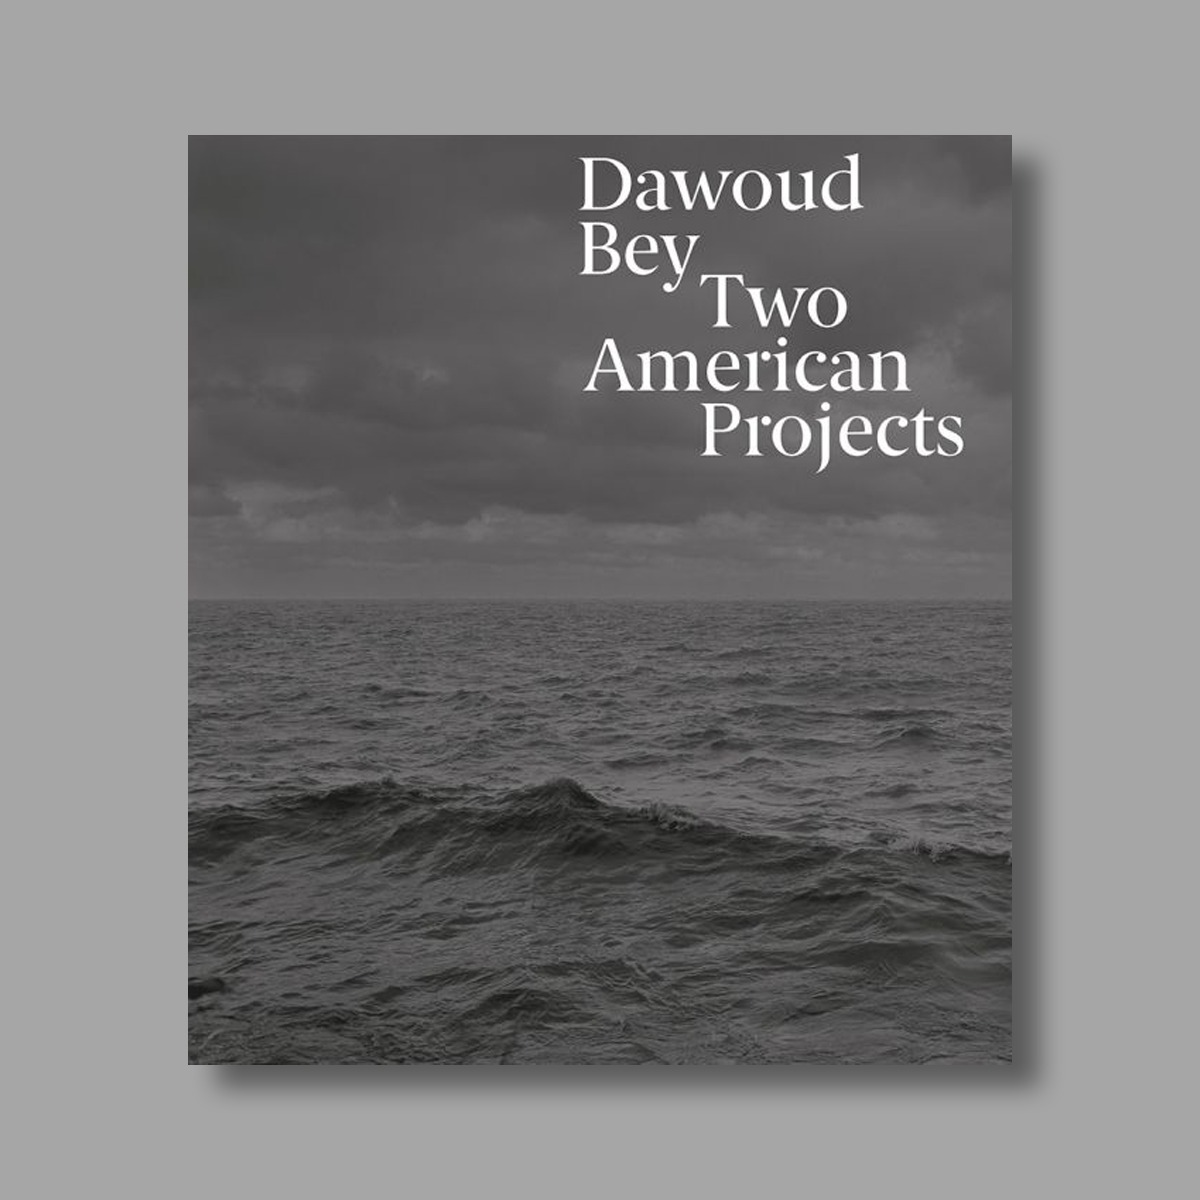 Dawoud Bey catalogue cover